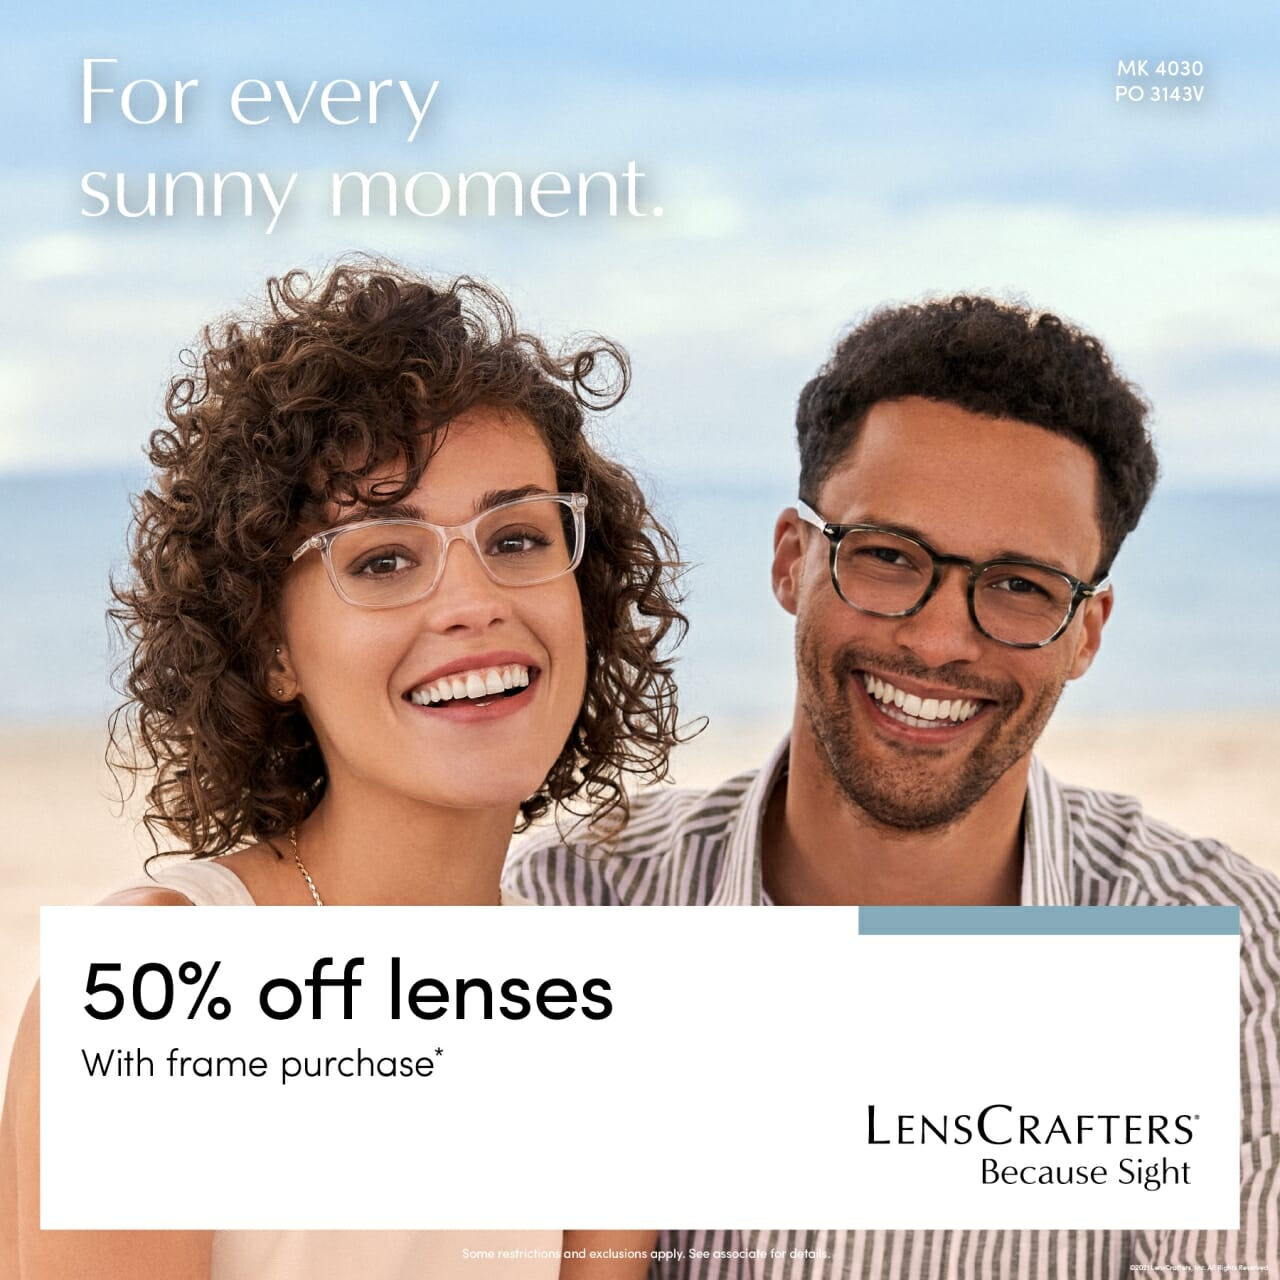 For every sunny moment. 50% off lenses with frame purchase at LensCrafters. Exclusions apply.